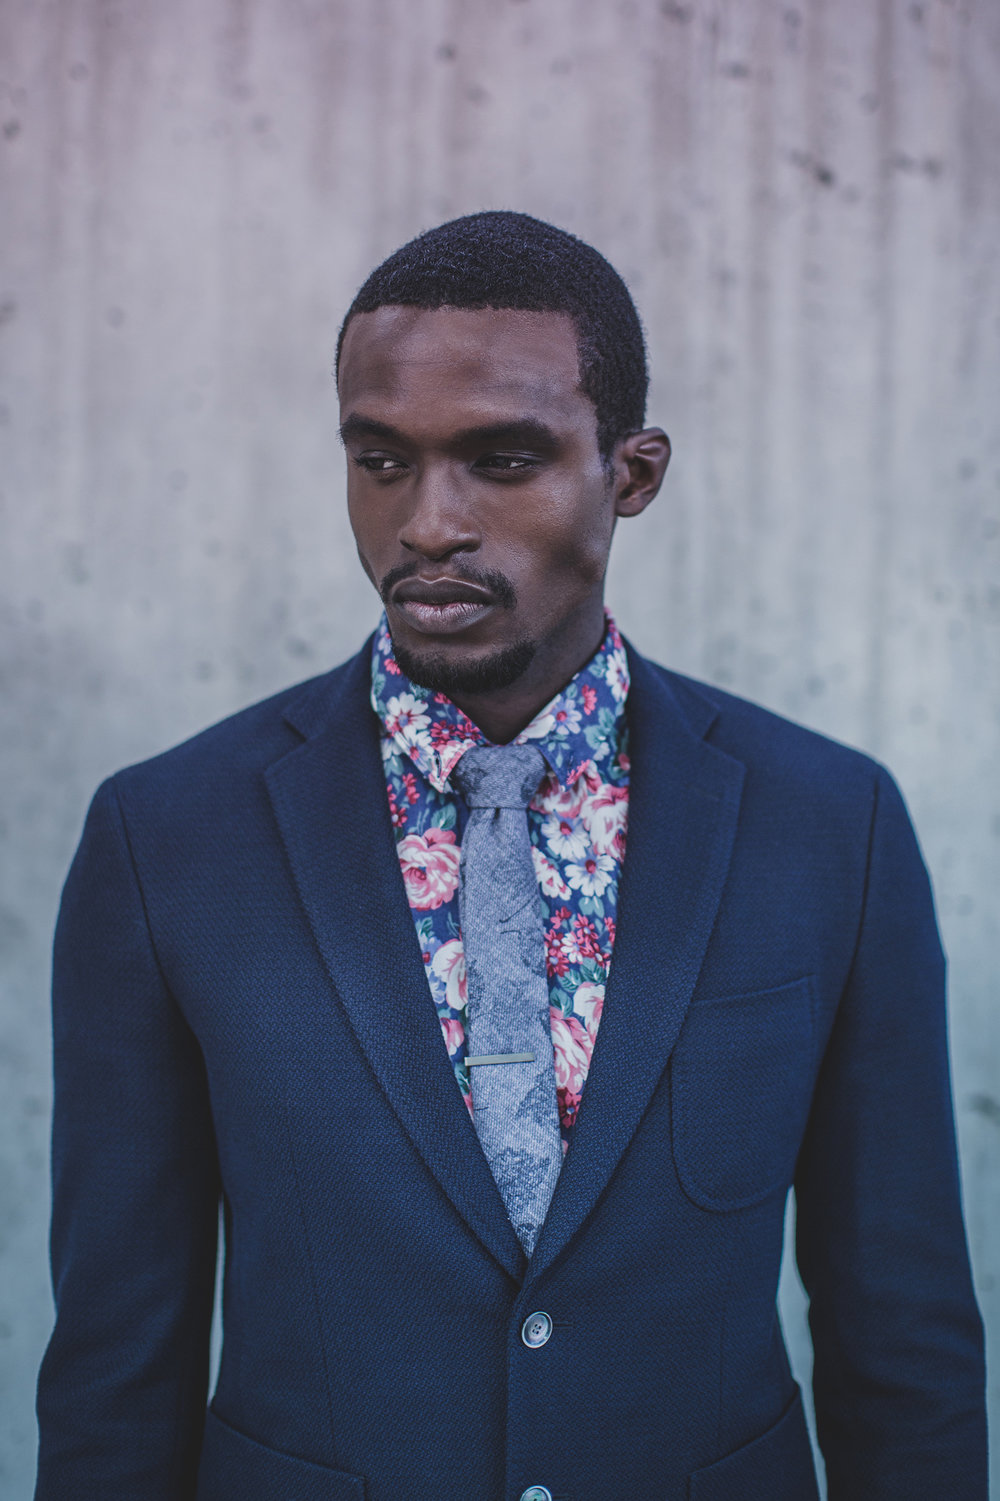 © duston-todd-floral-menswear-suit-fashion-urban.jpg.jpg